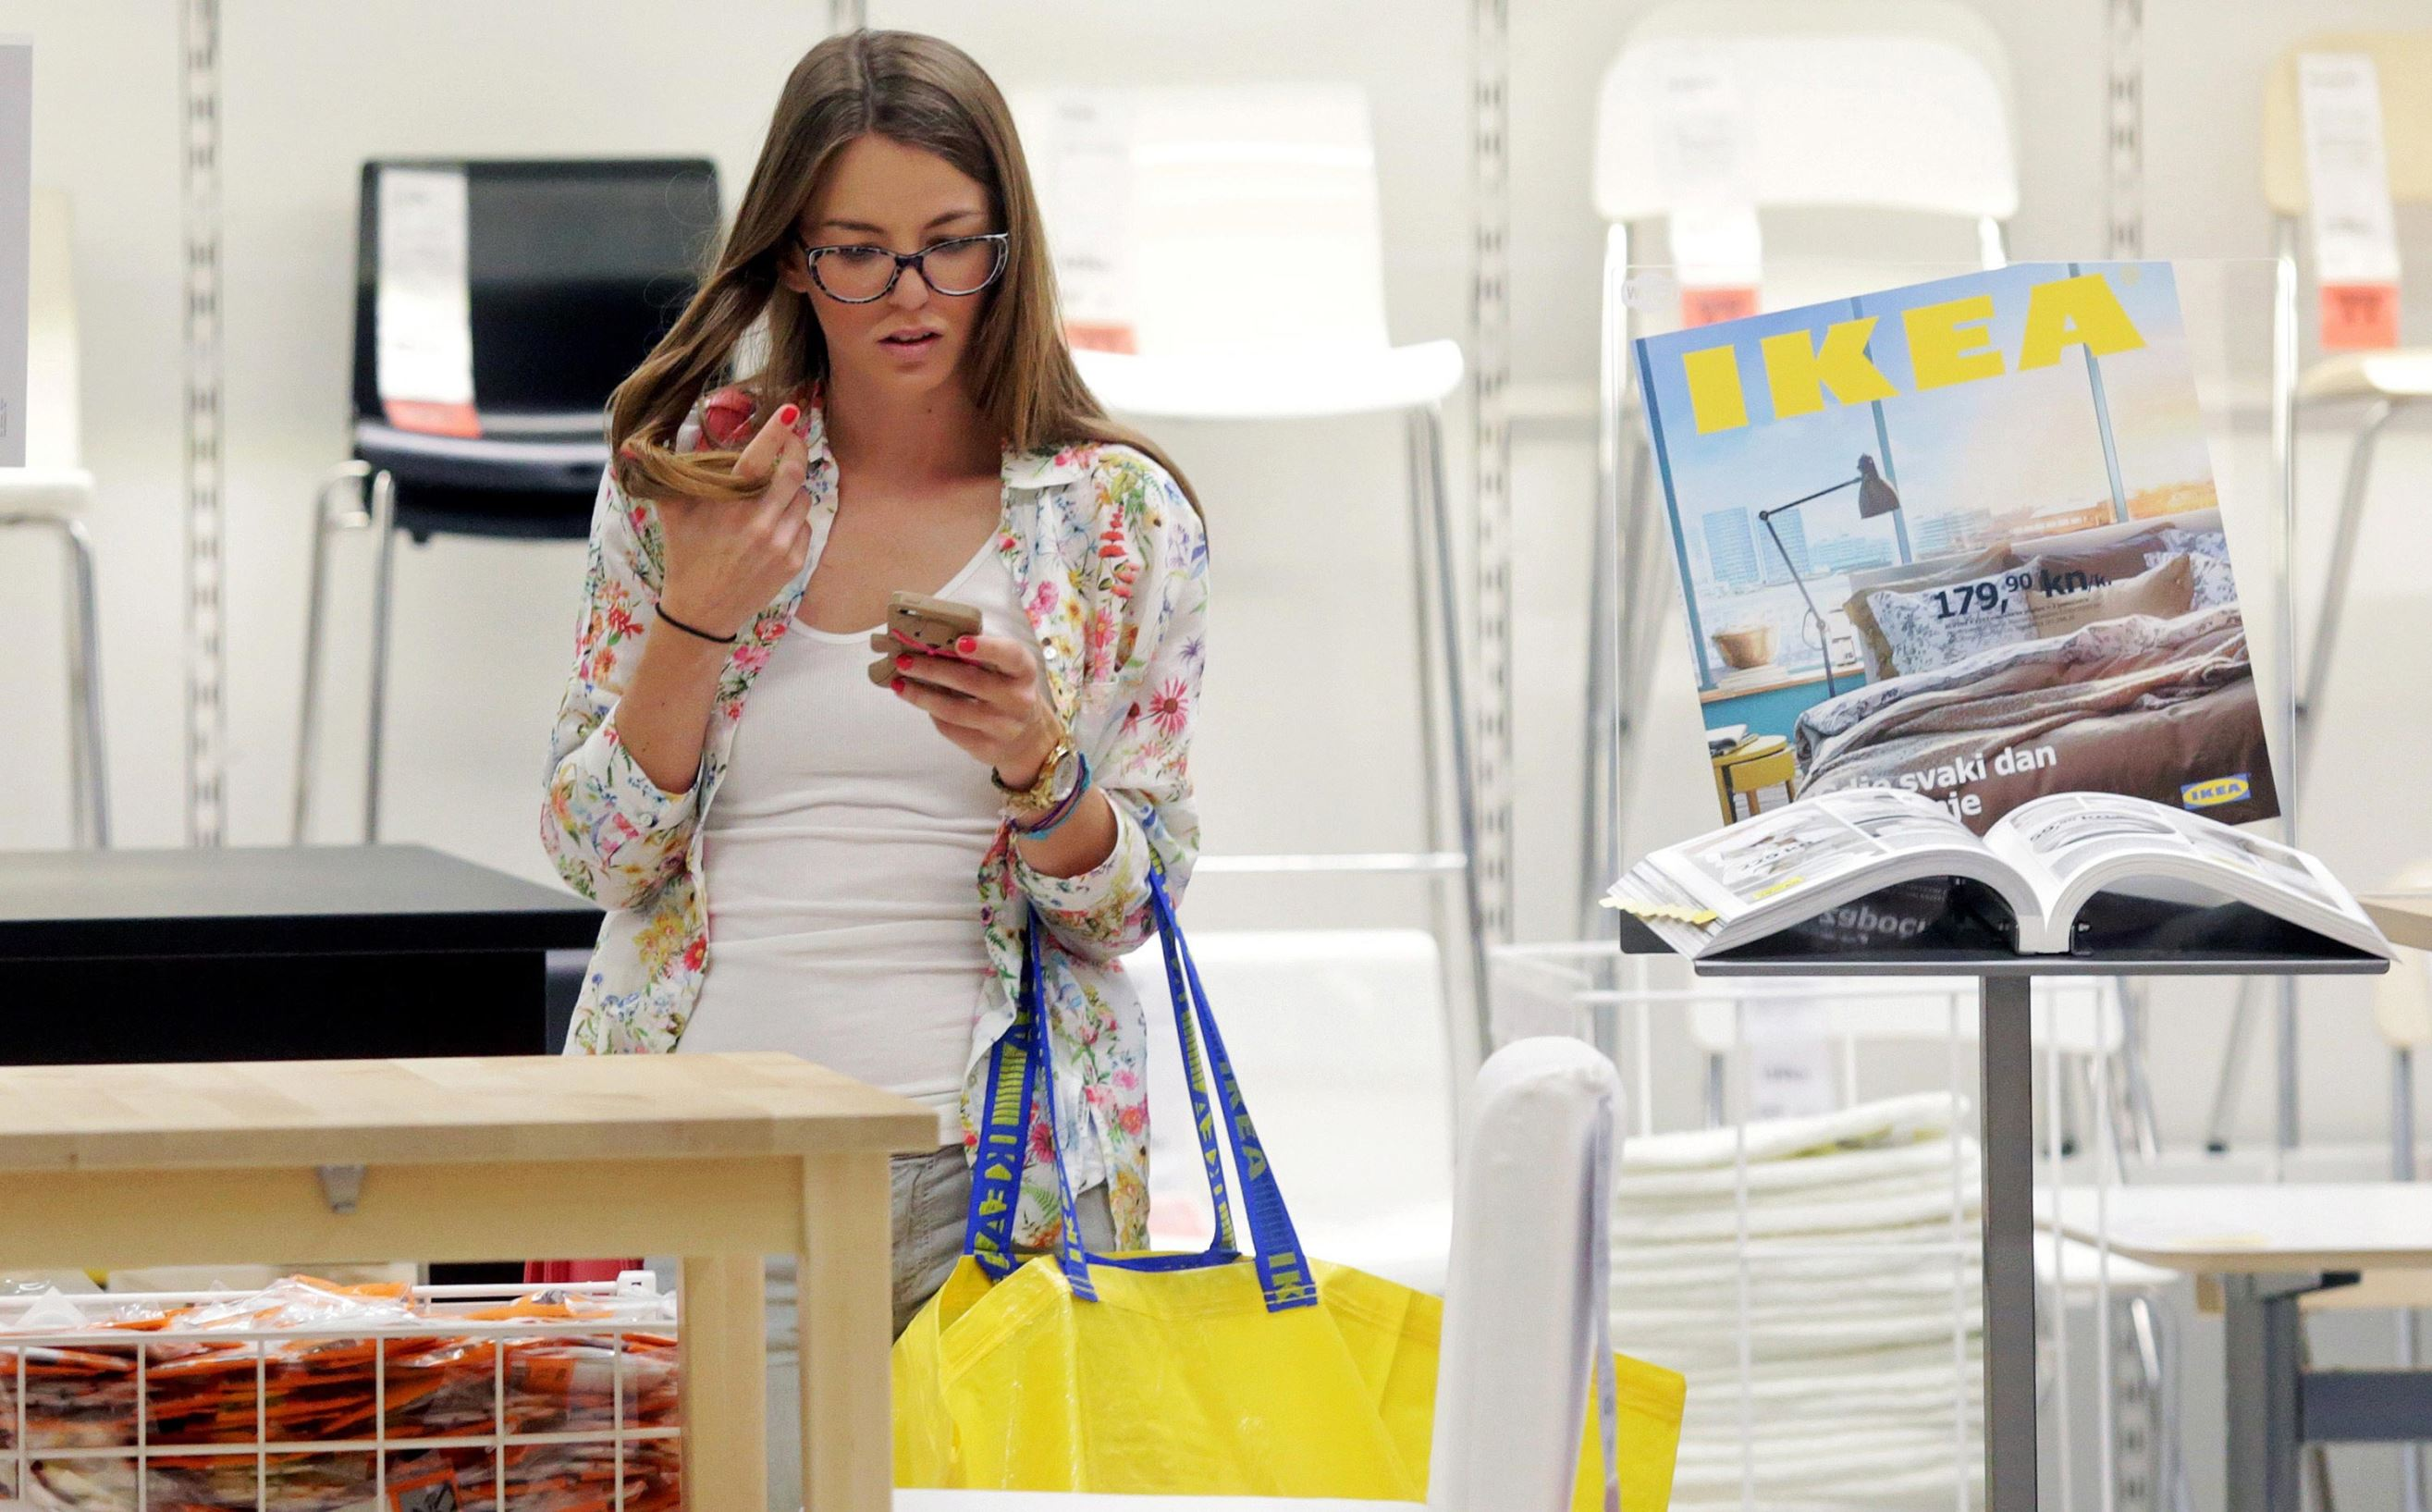 A customer shops at an IKEA store.